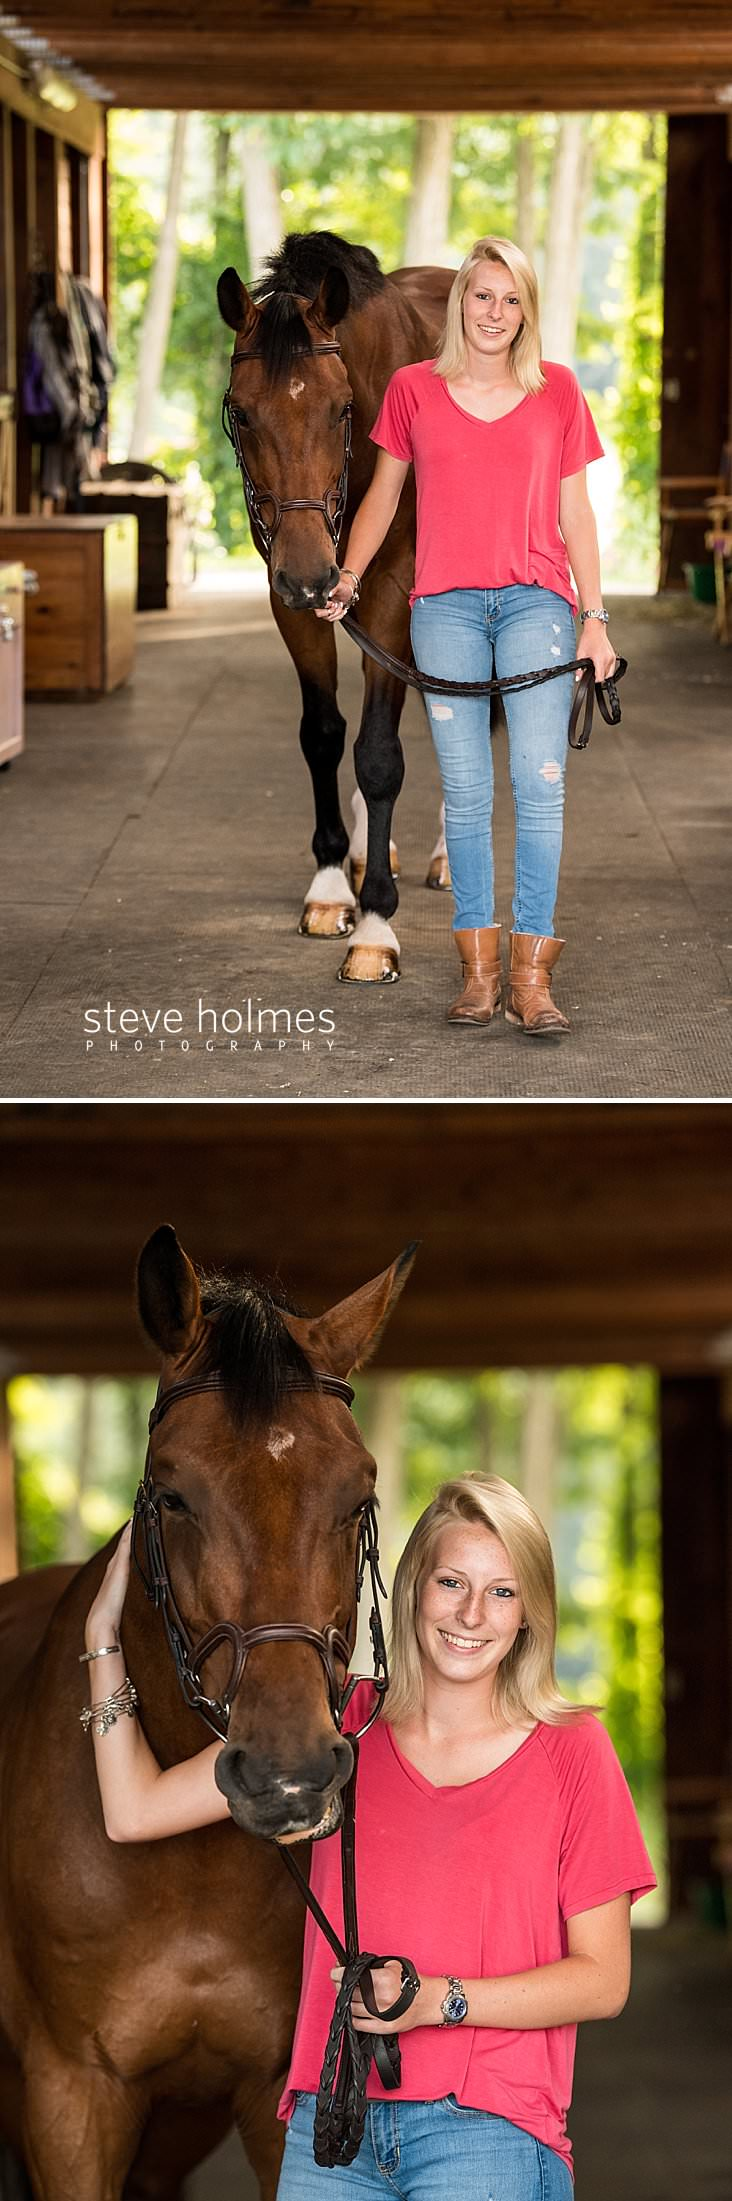 04_Young woman leads her horse in barn for senior portrait.jpg